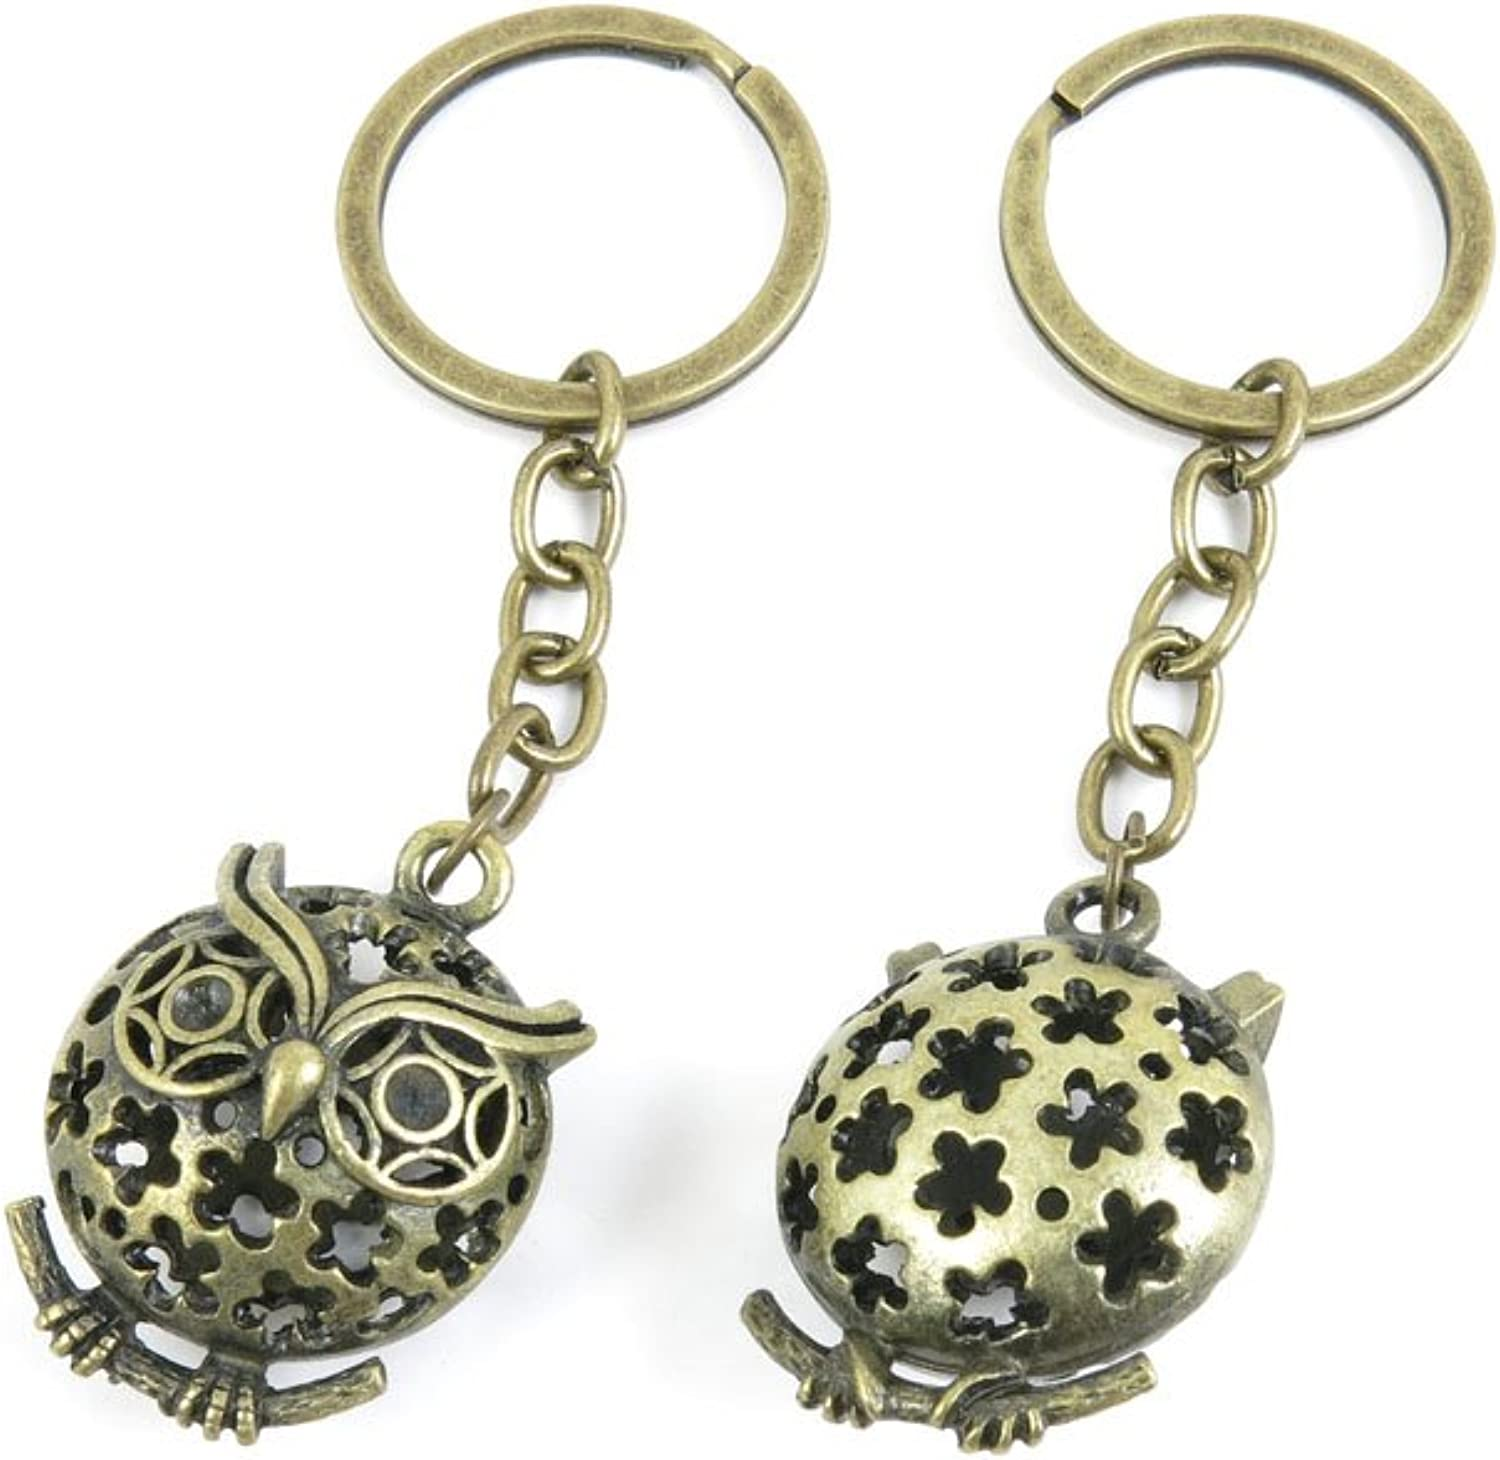 30 PCS Keyrings Keychains Key Ring Chains Tags Jewelry Findings Clasps Buckles Supplies U6ZK6 Hollow Owl